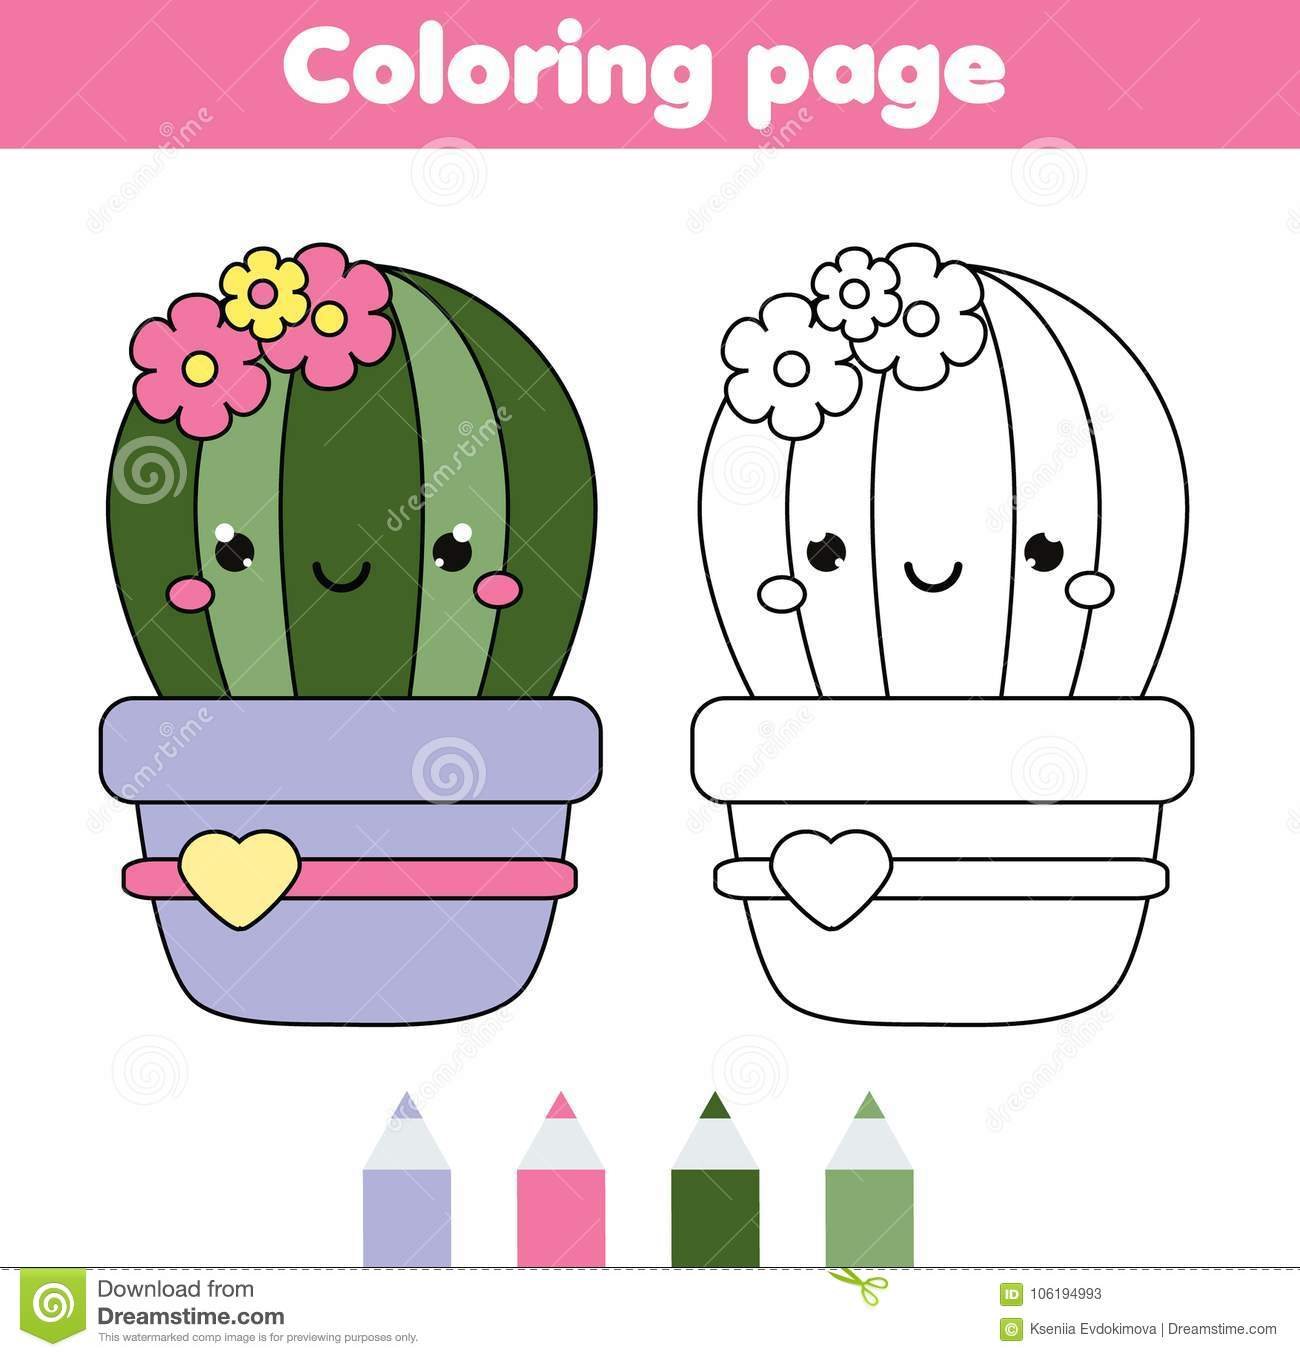 23+ Pretty Picture of Cactus Coloring Page - birijus.com | 1357x1300